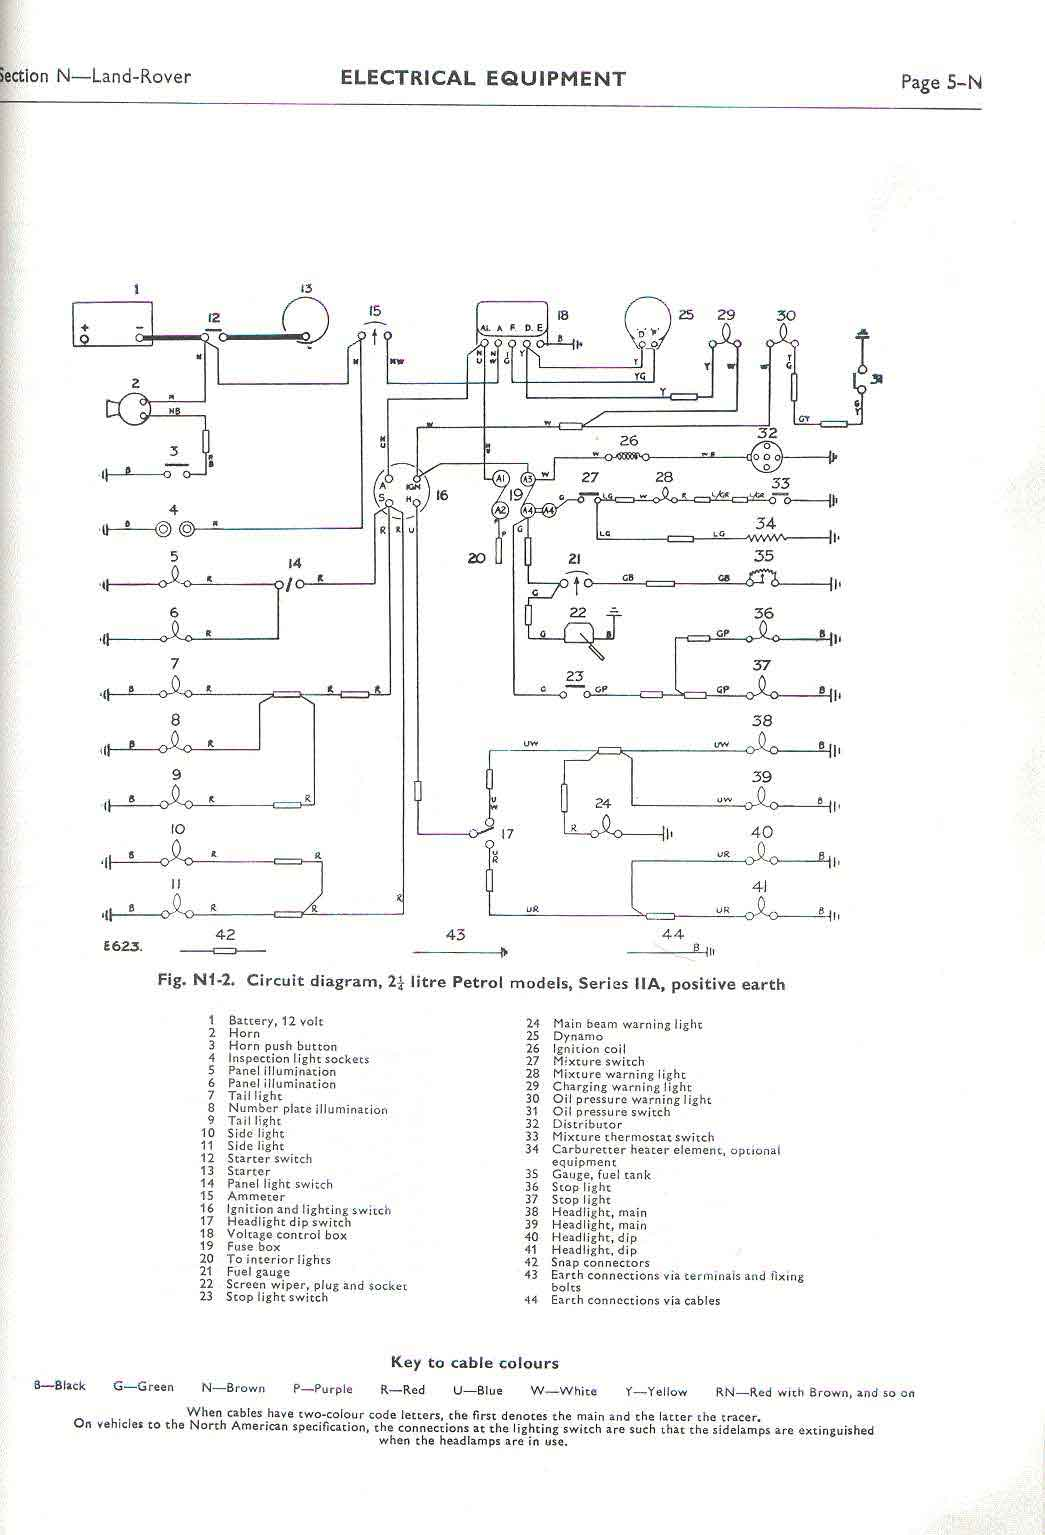 SIIA+VE land rover faq repair & maintenance series electrical land rover series 2a wiring diagram at bayanpartner.co